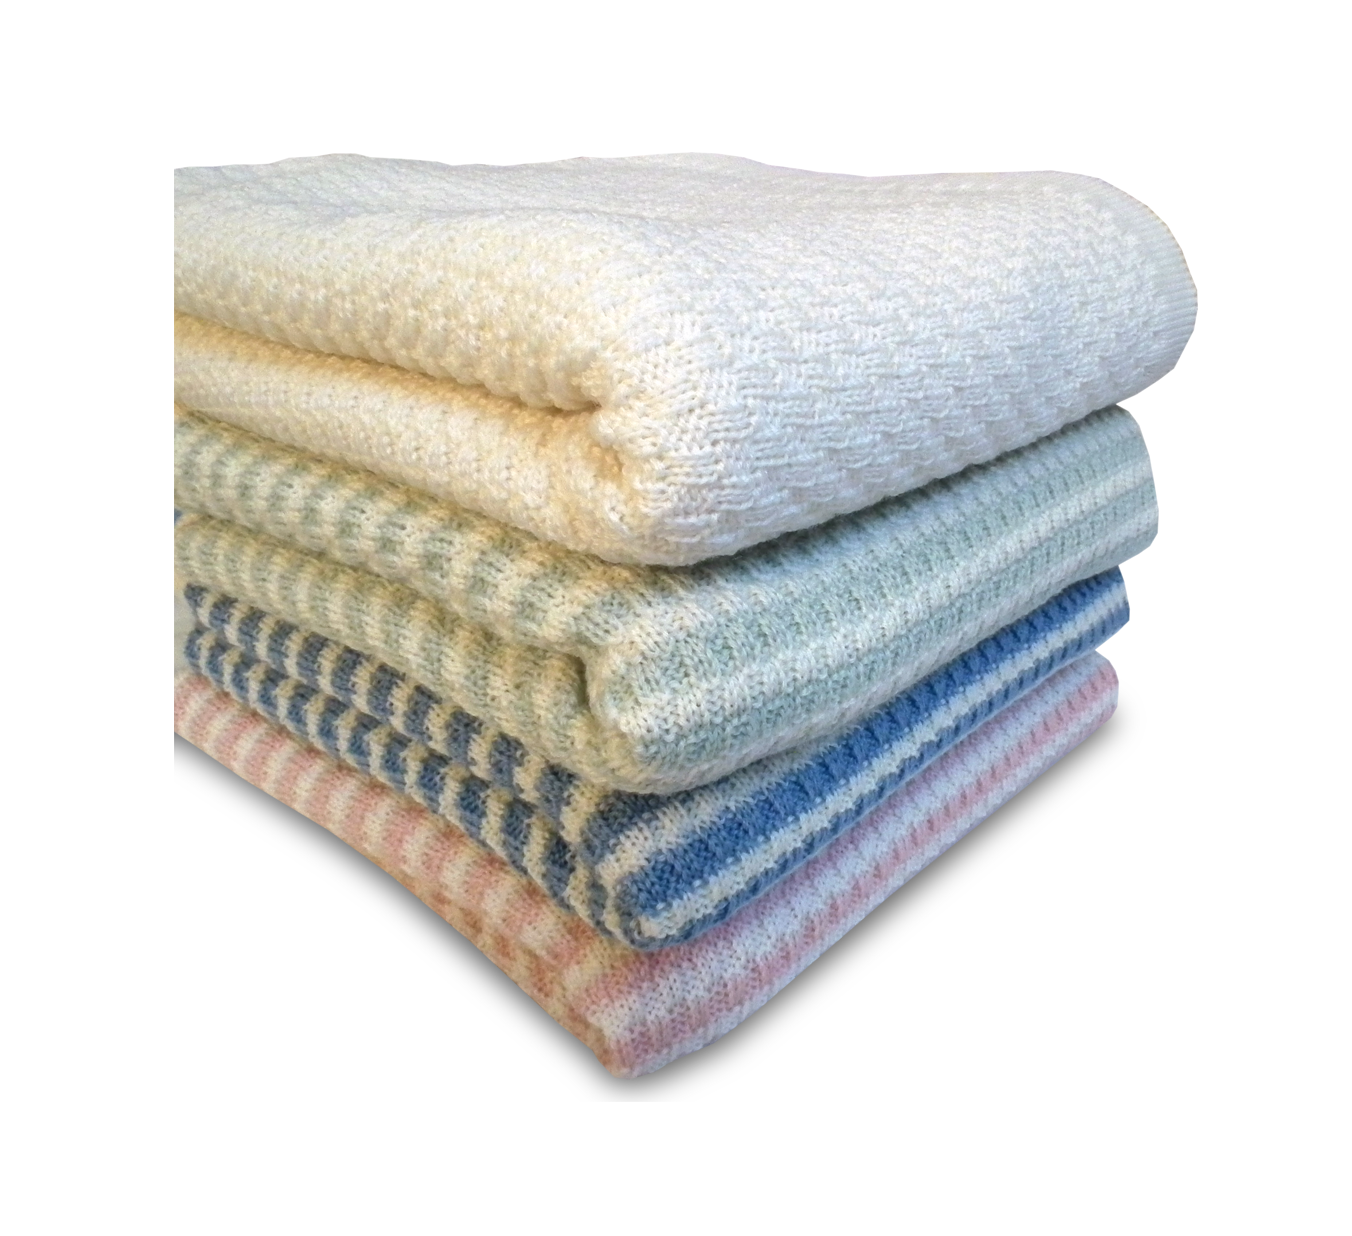 Blanket Wraps. Blanket wraps are the next generation of shawls and are inspired by the blanket wearing tradition. It is the ideal cross-over from the traditional shawl into a modern fashion item.